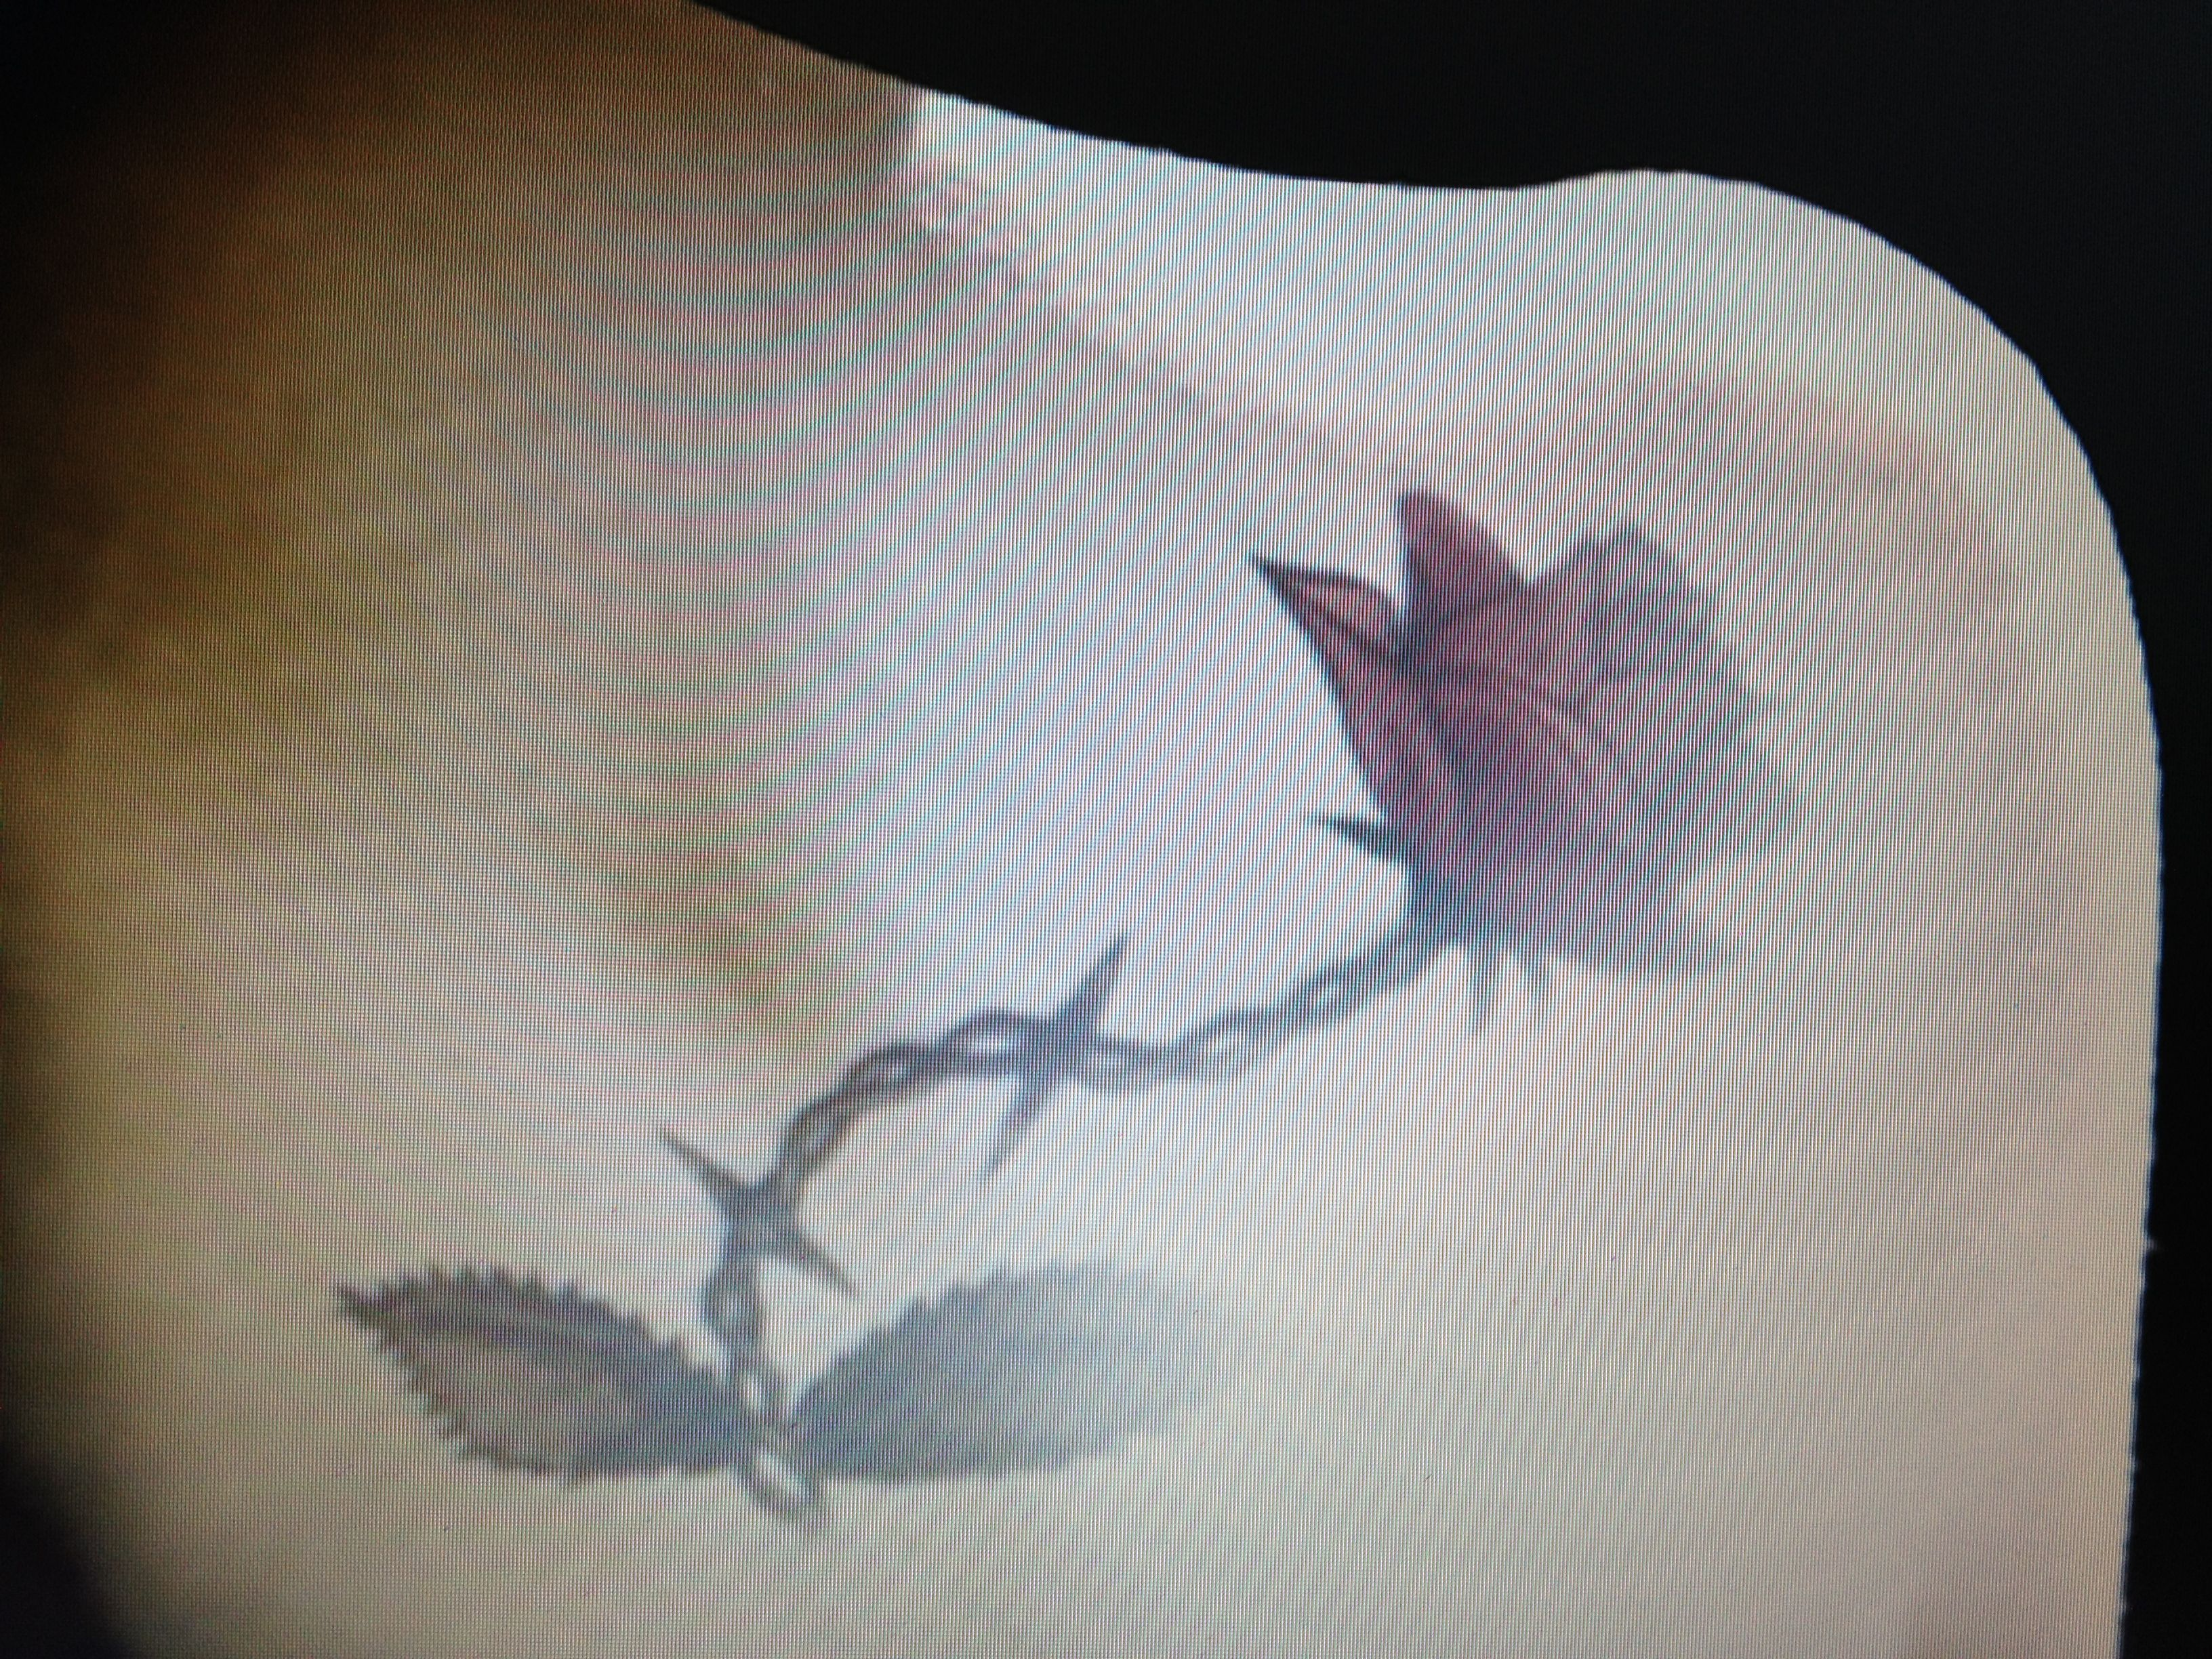 Rose with a chain and thorns. Love it .